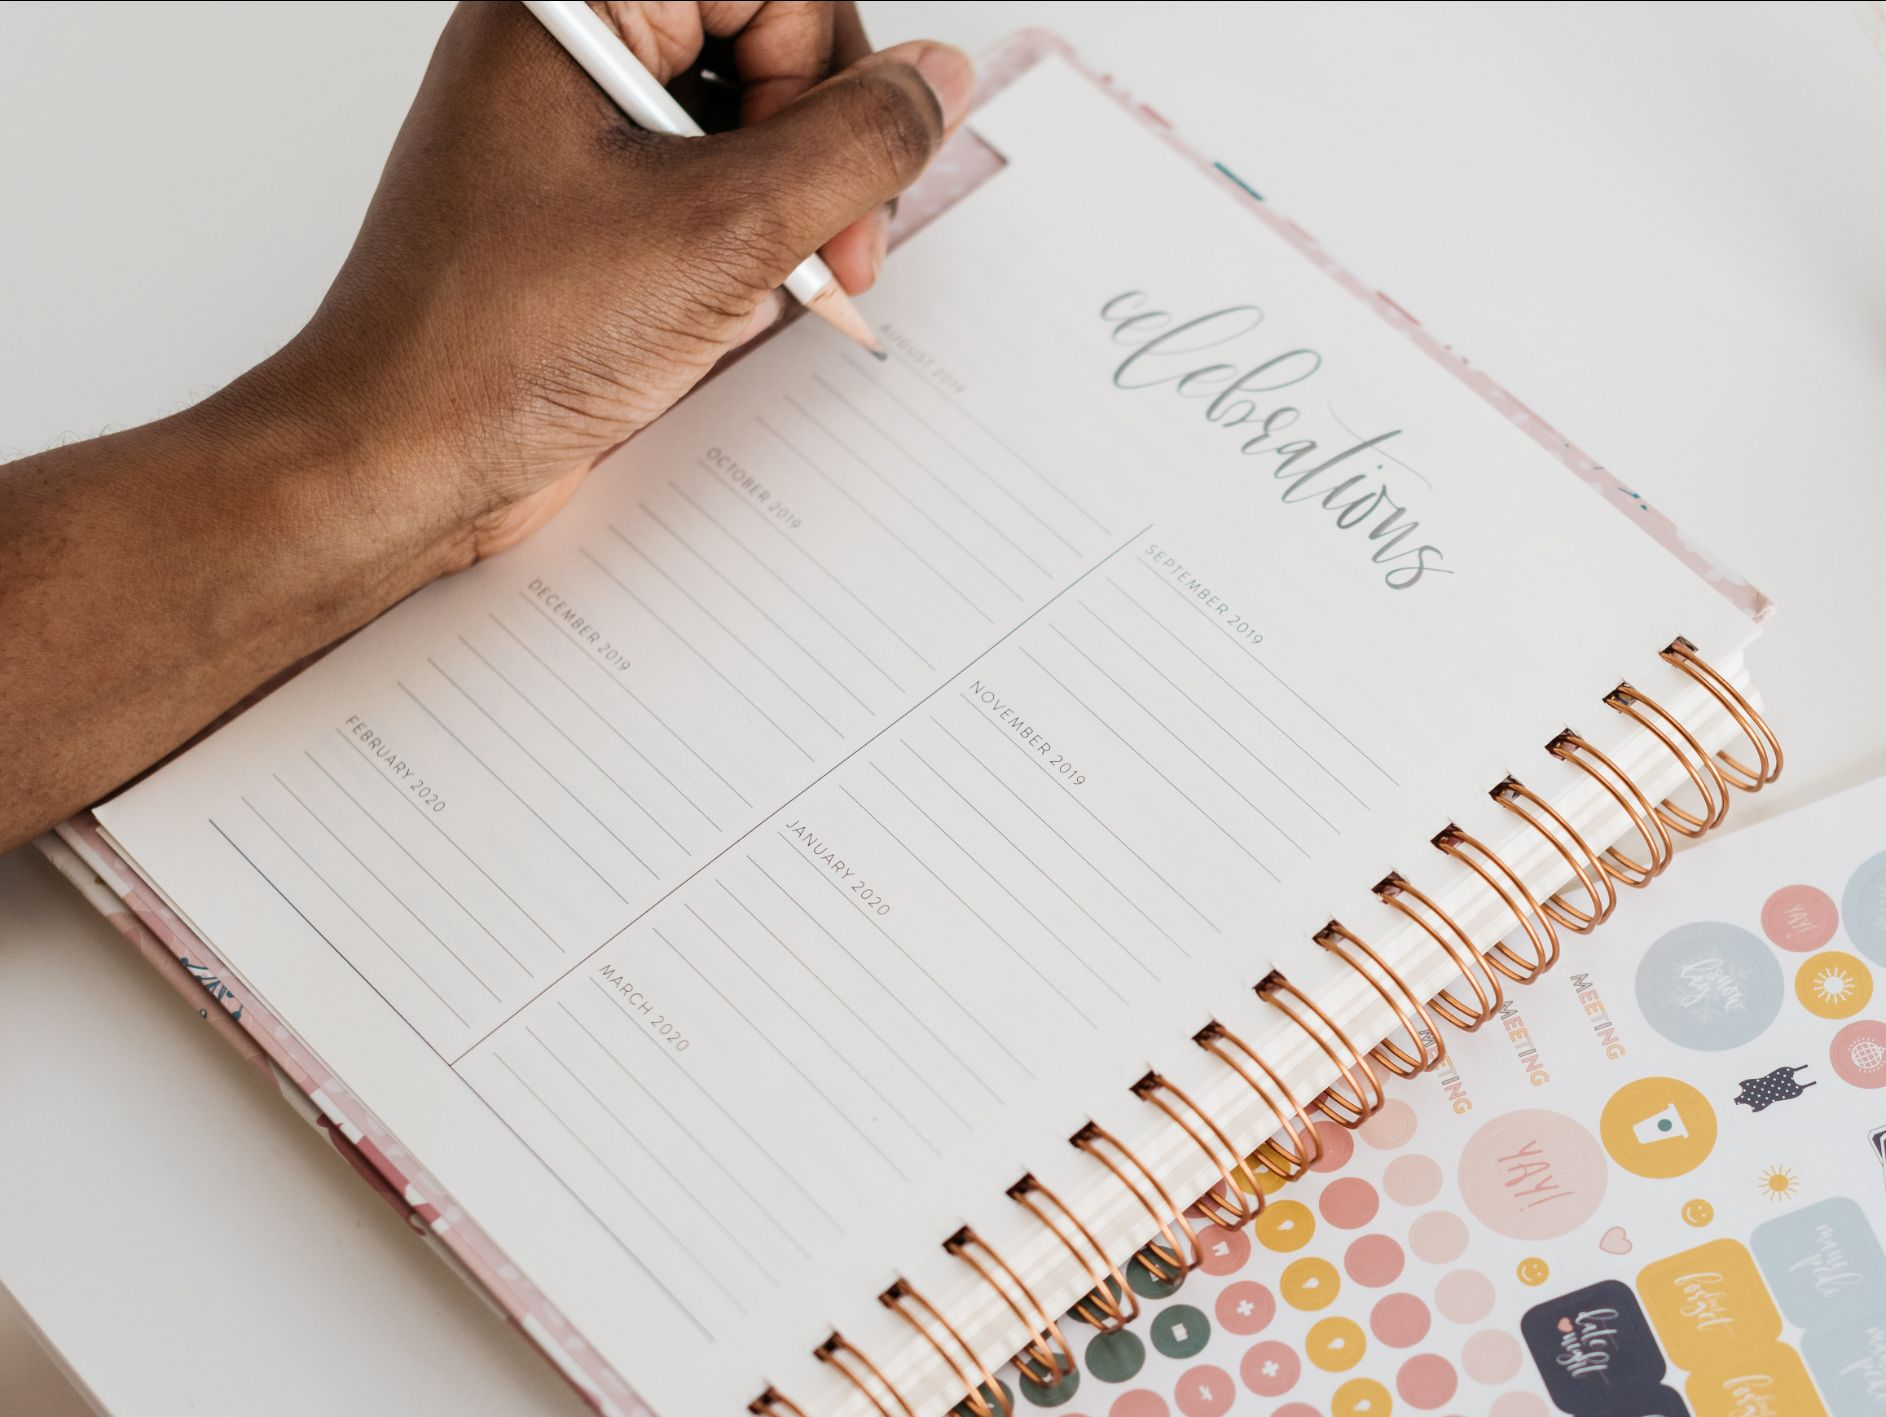 Day Planner or Calendars